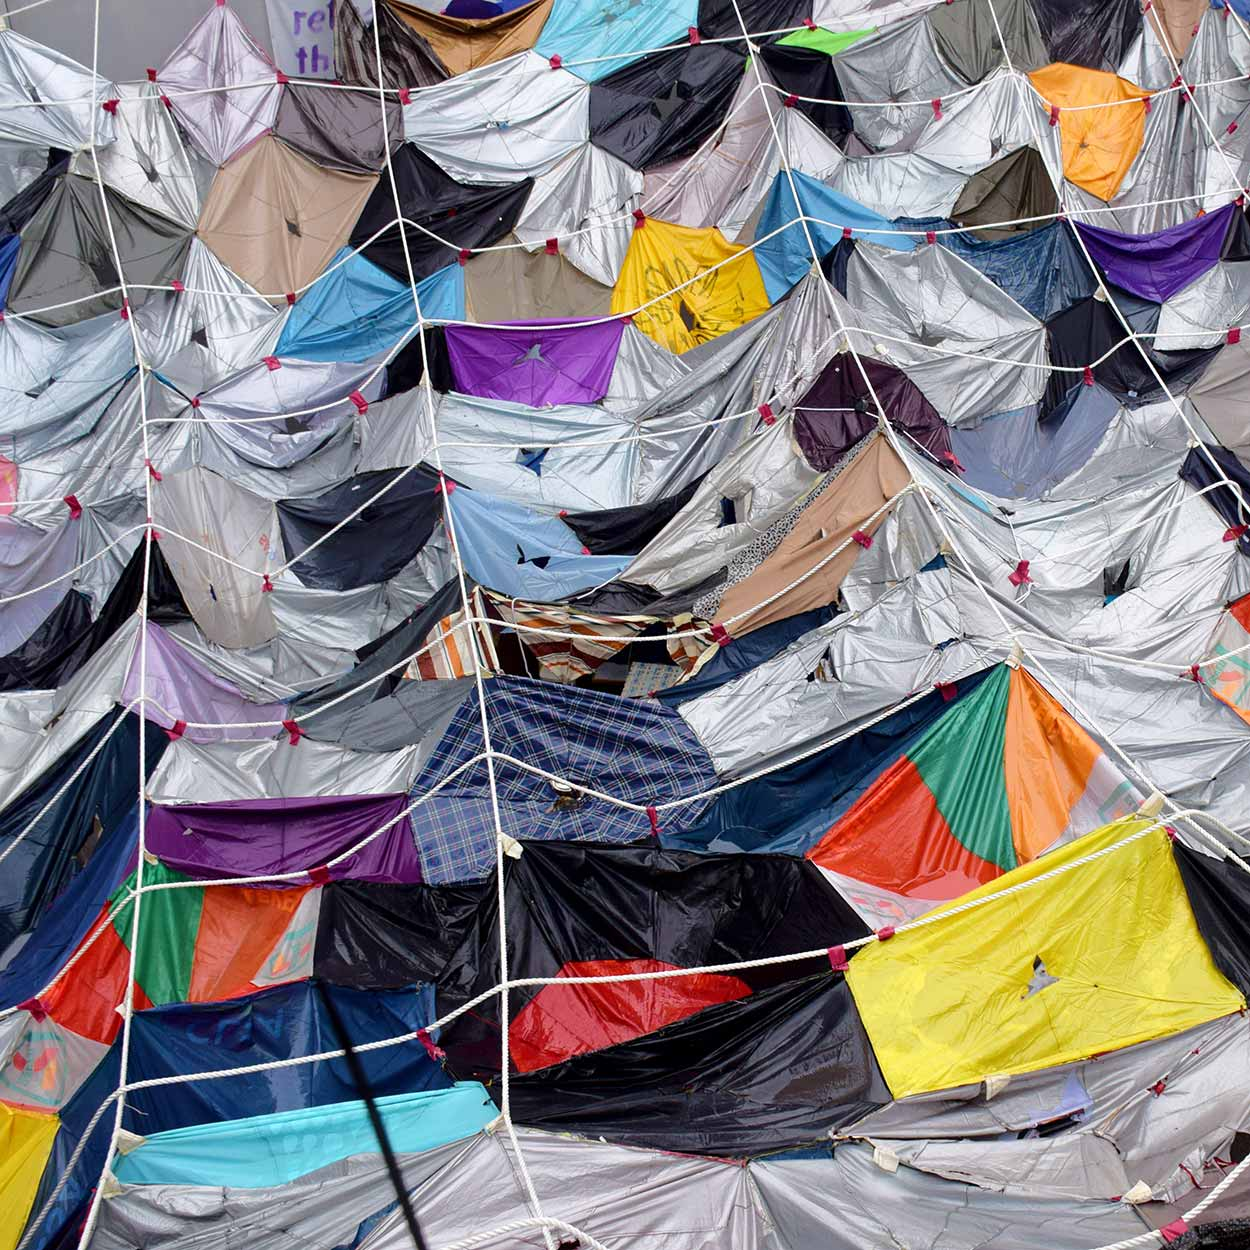 The remnants of umbrellas hanging over Connaught Road during the umbrella revolution, Admiralty, Hong Kong, China